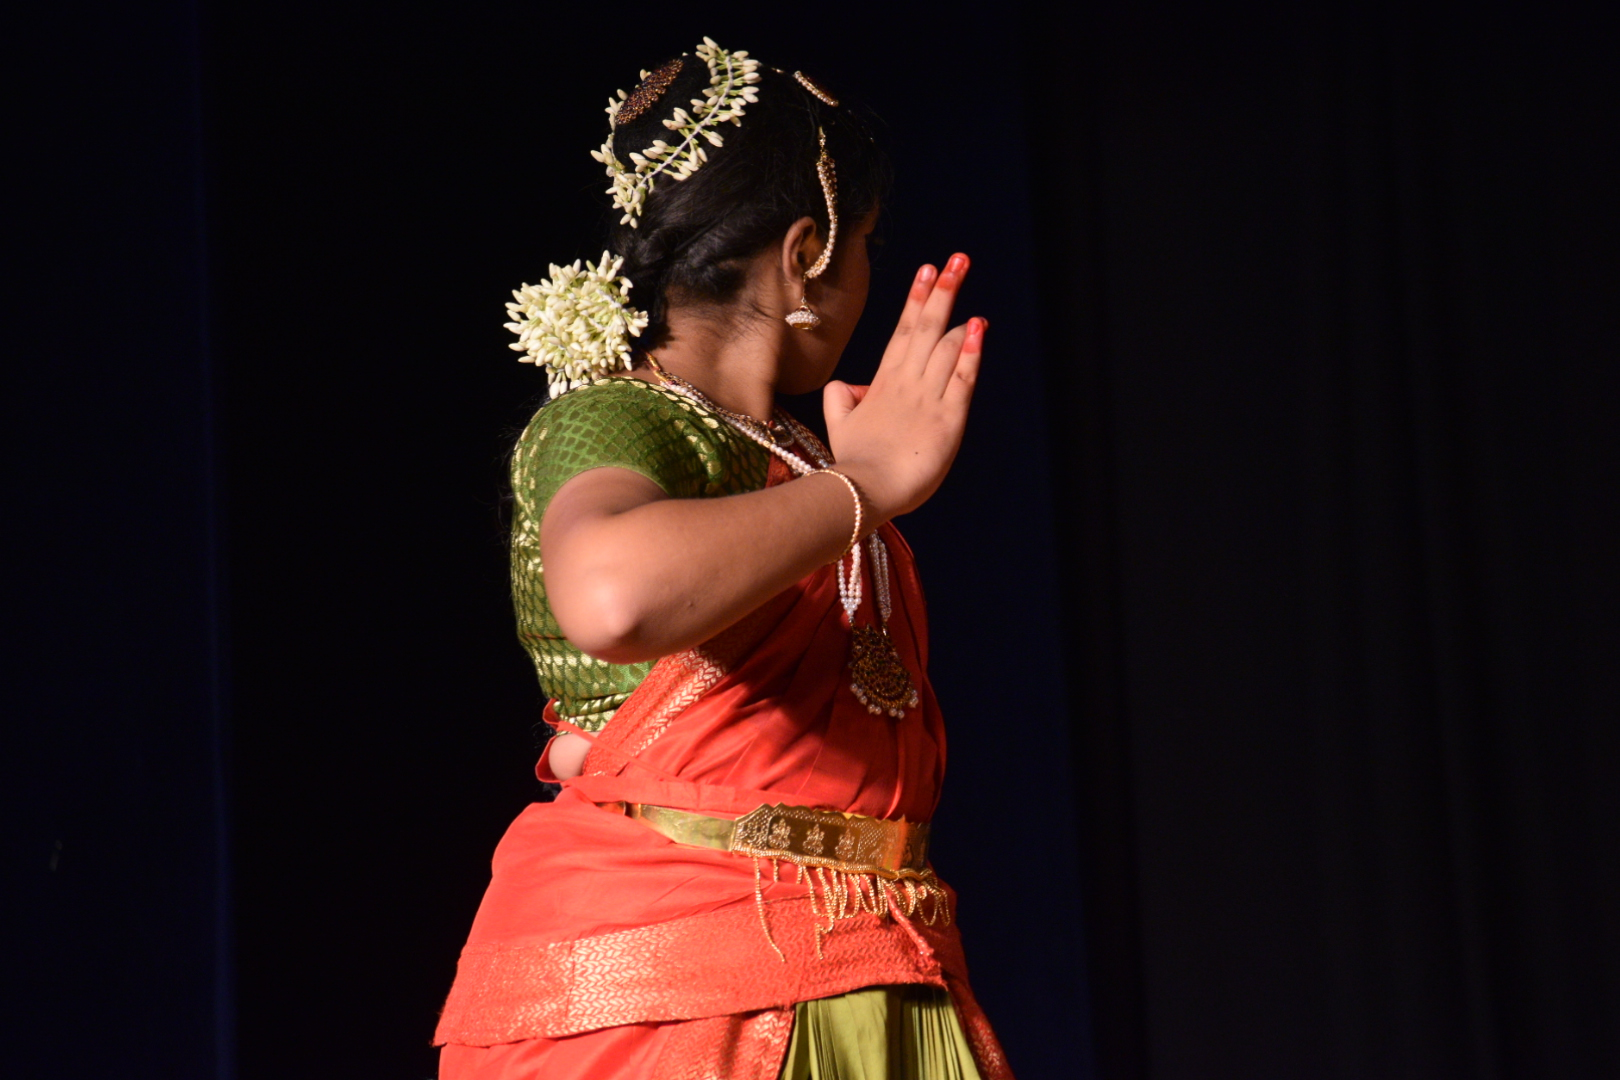 Costumes, Flowers, Muthras - Truly Bharathatyam is an art of Chennai